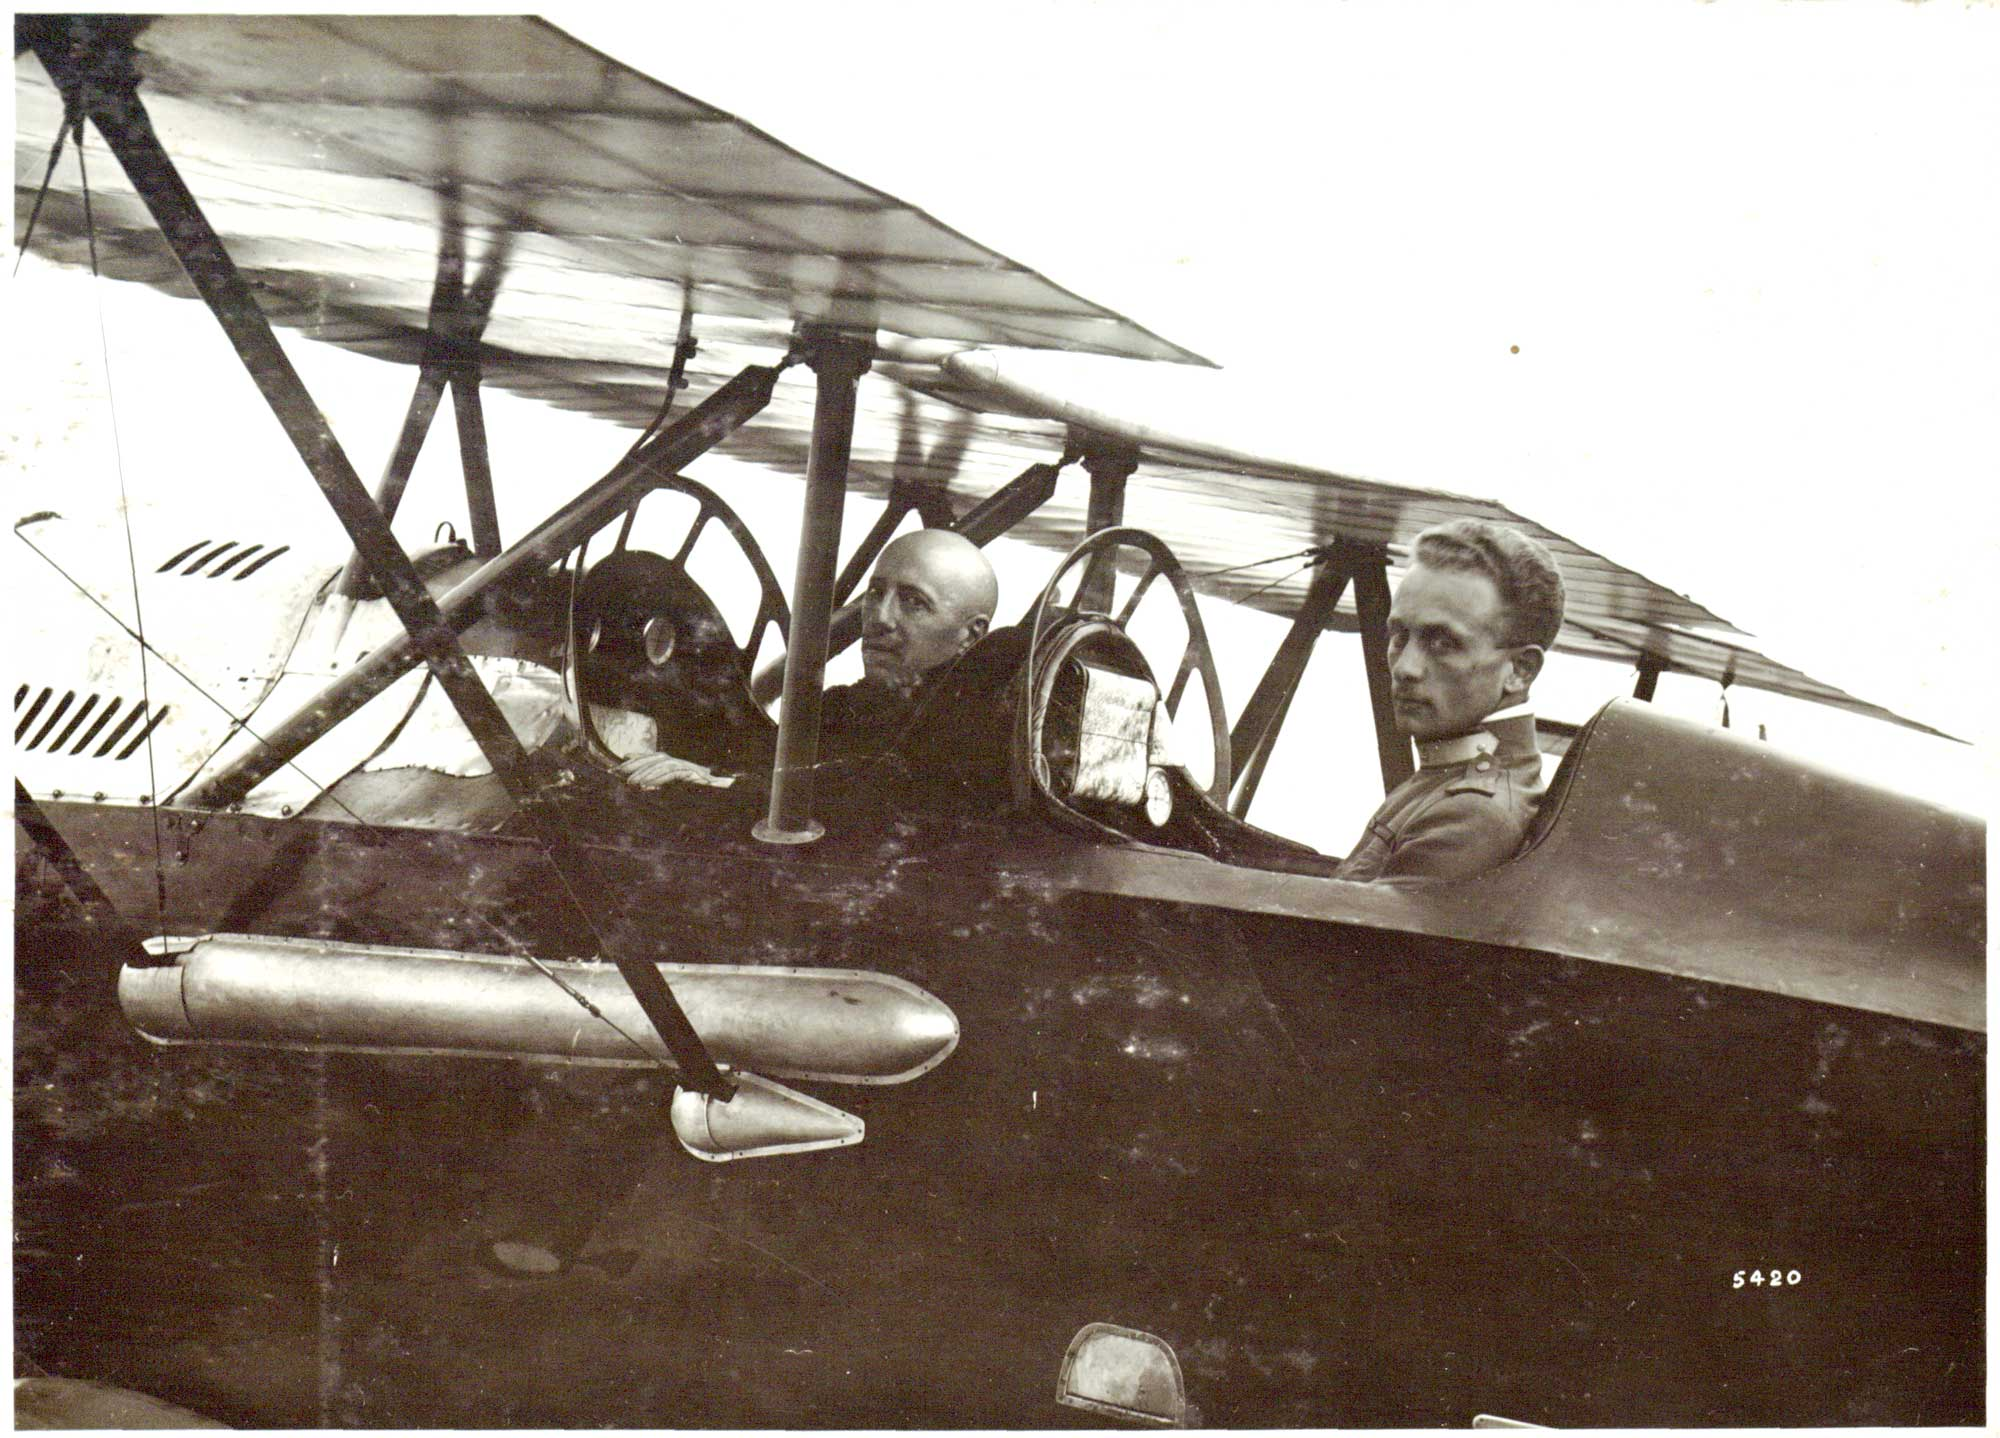 Photograph of Italian writer Gabriele d'Annunzio and pilot Natale Palli, prior to take-off. On 9 August 1918 they flew their aeroplane over Vienna, dropping thousands of leaflets and three large posters.